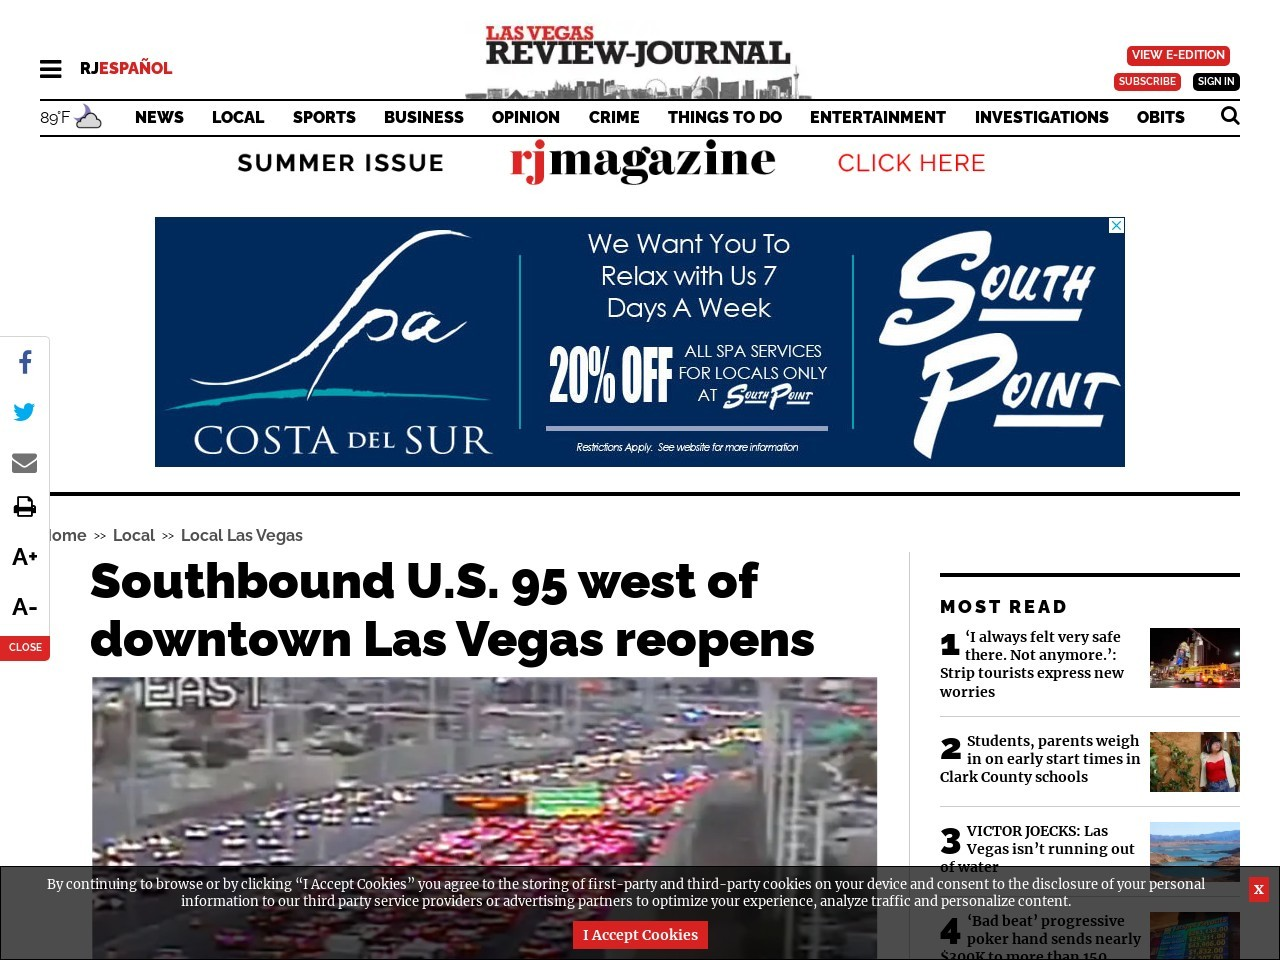 Southbound U.S. 95 west of downtown Las Vegas reopens